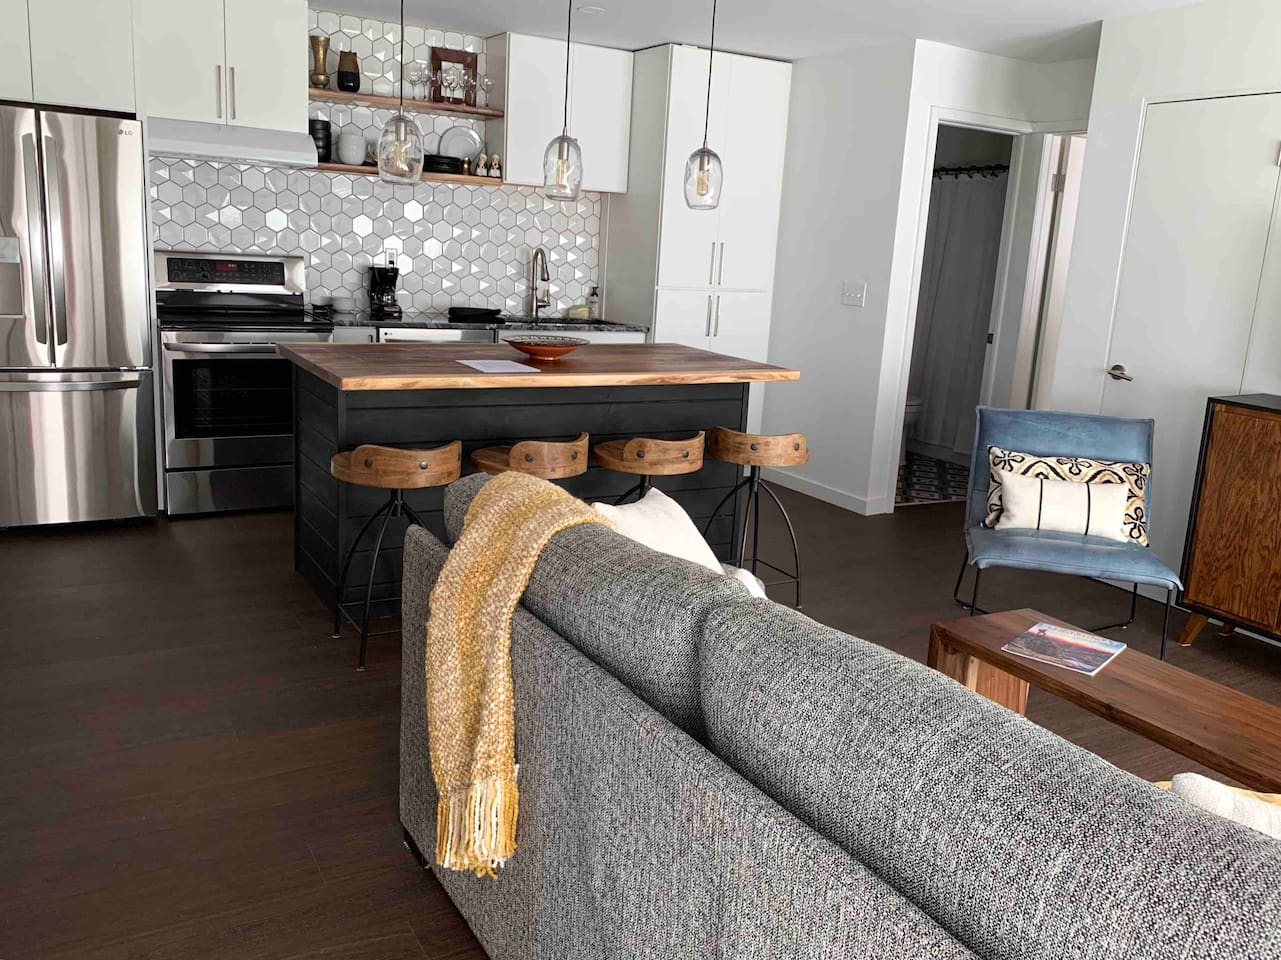 This open kitchen/living area has seating for 4 at the live edge wood island.  The couch pulls out to a queen size bed.